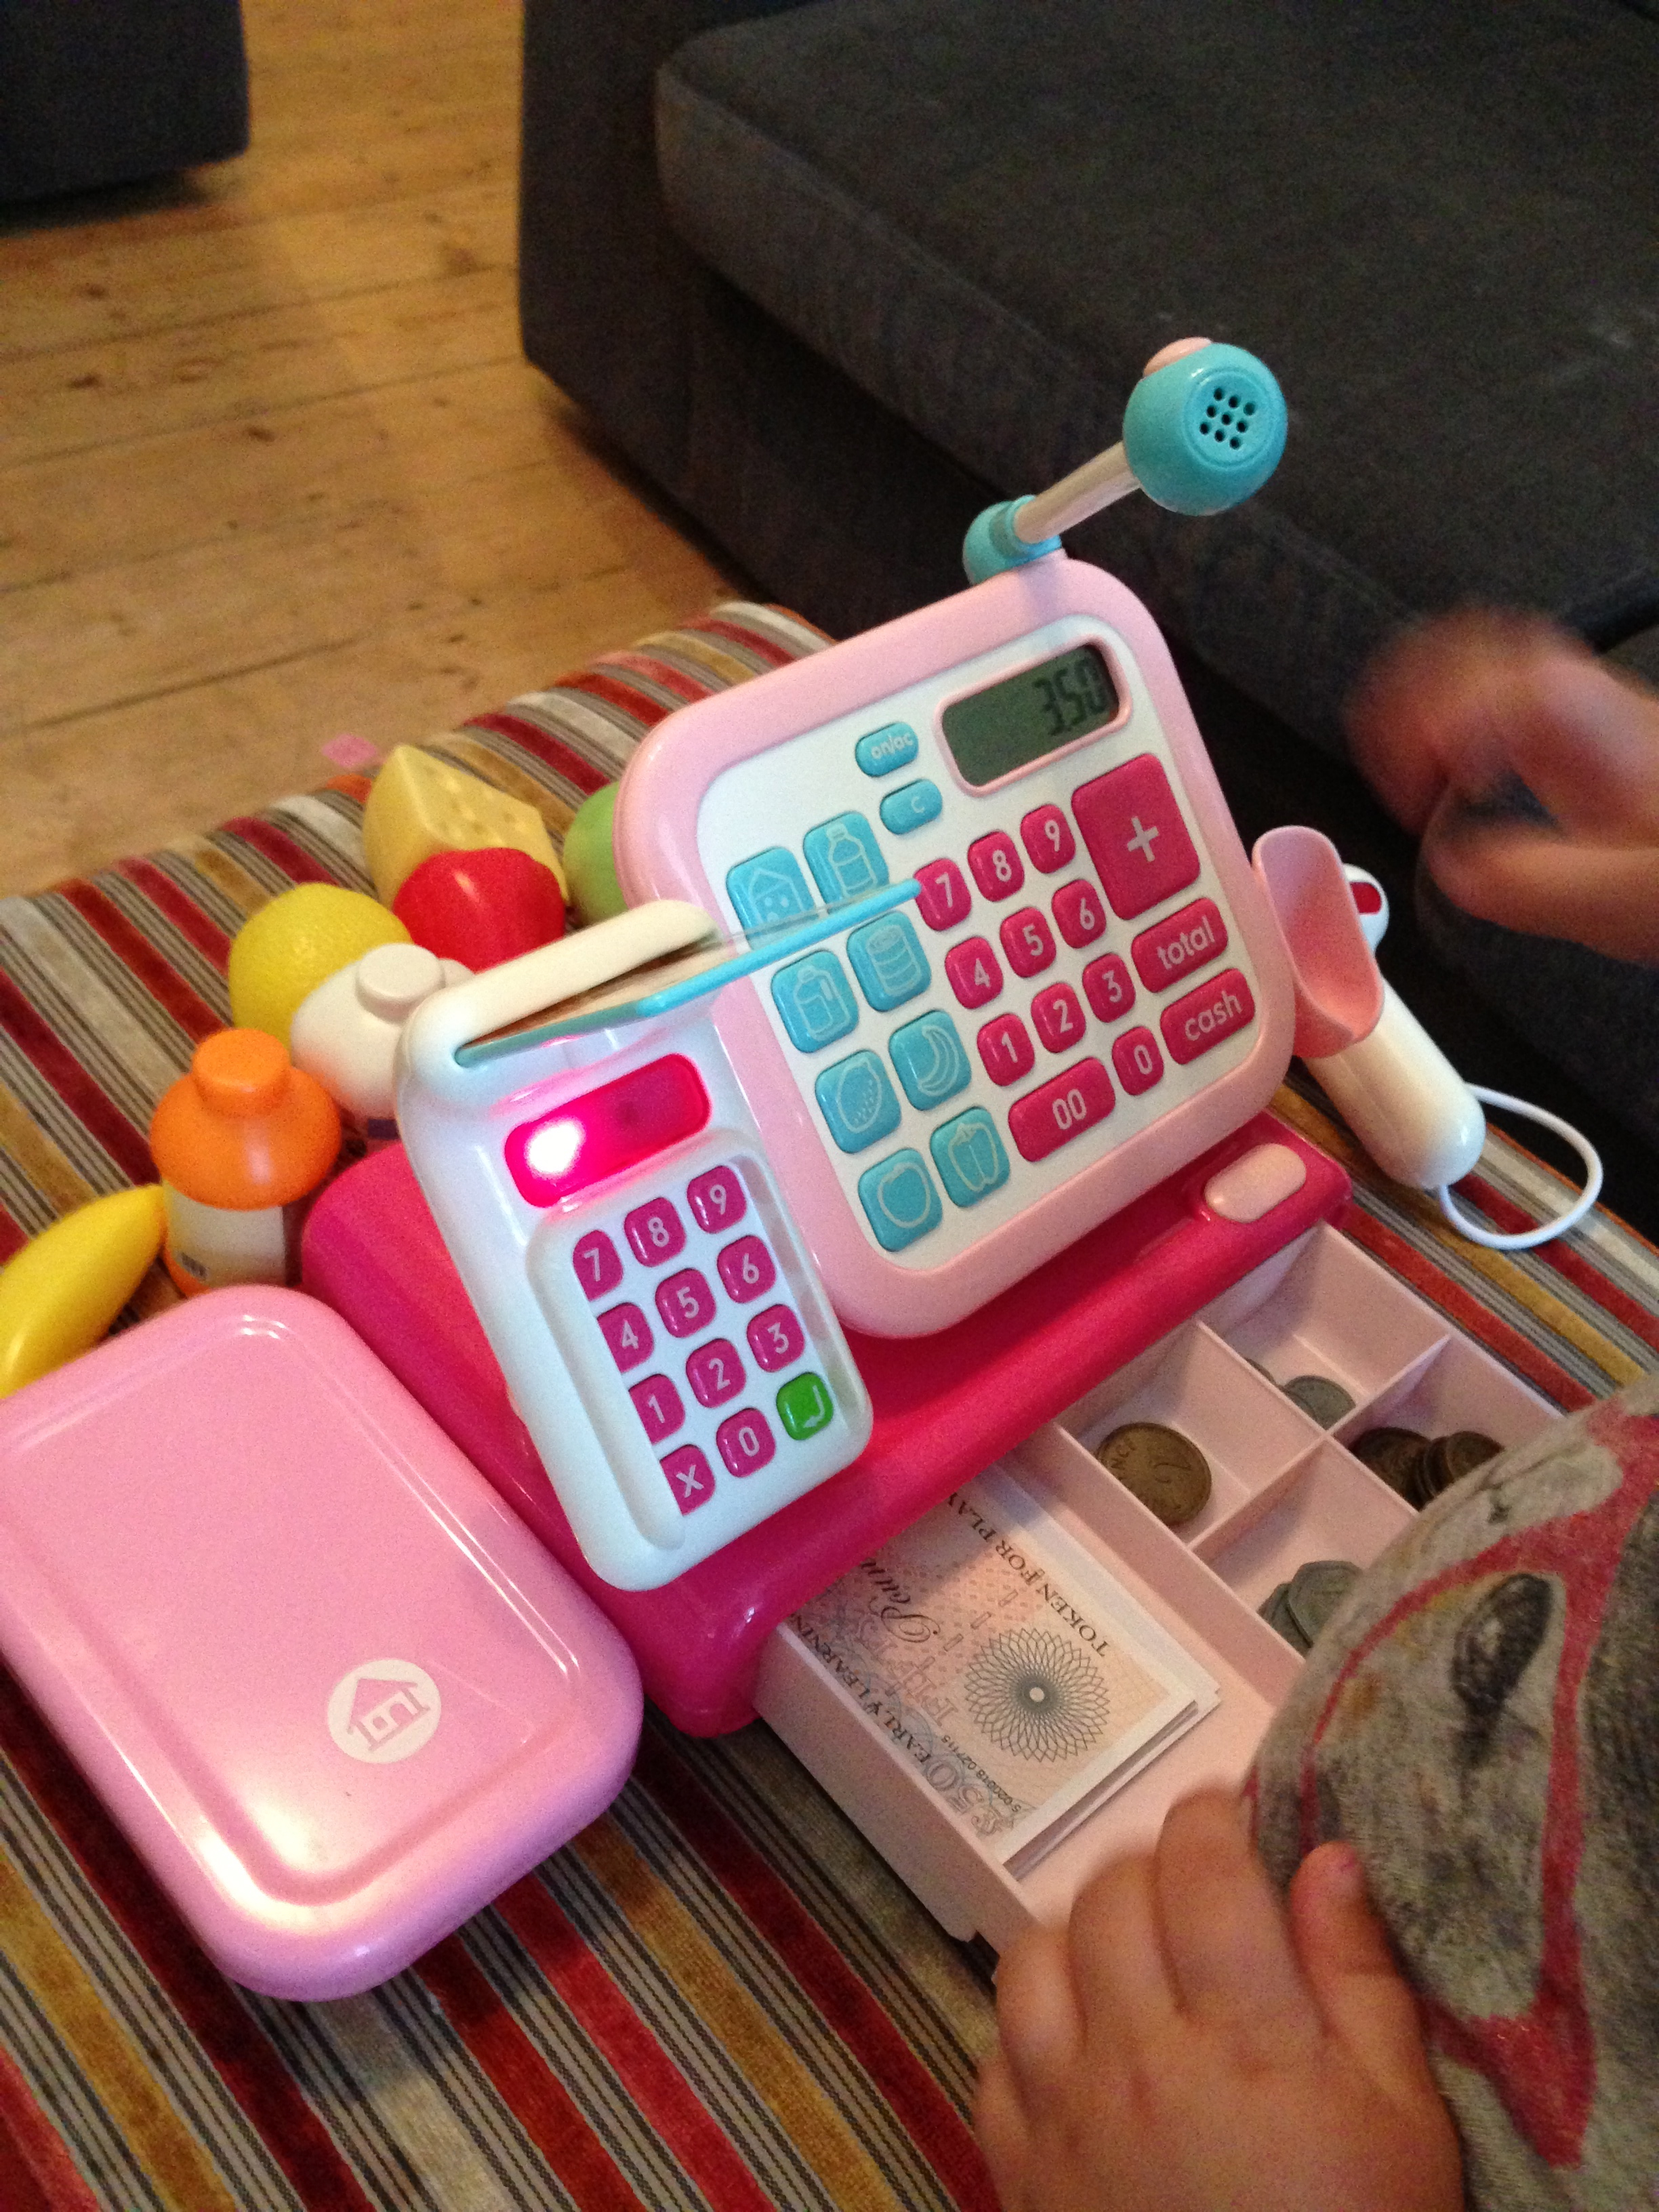 Absorbing Elc Cash Register Elc Cash Register Loved By Parents Parenting Pregnancy Cash Register Toy Wooden Cash Register Toy Nz baby Cash Register Toy